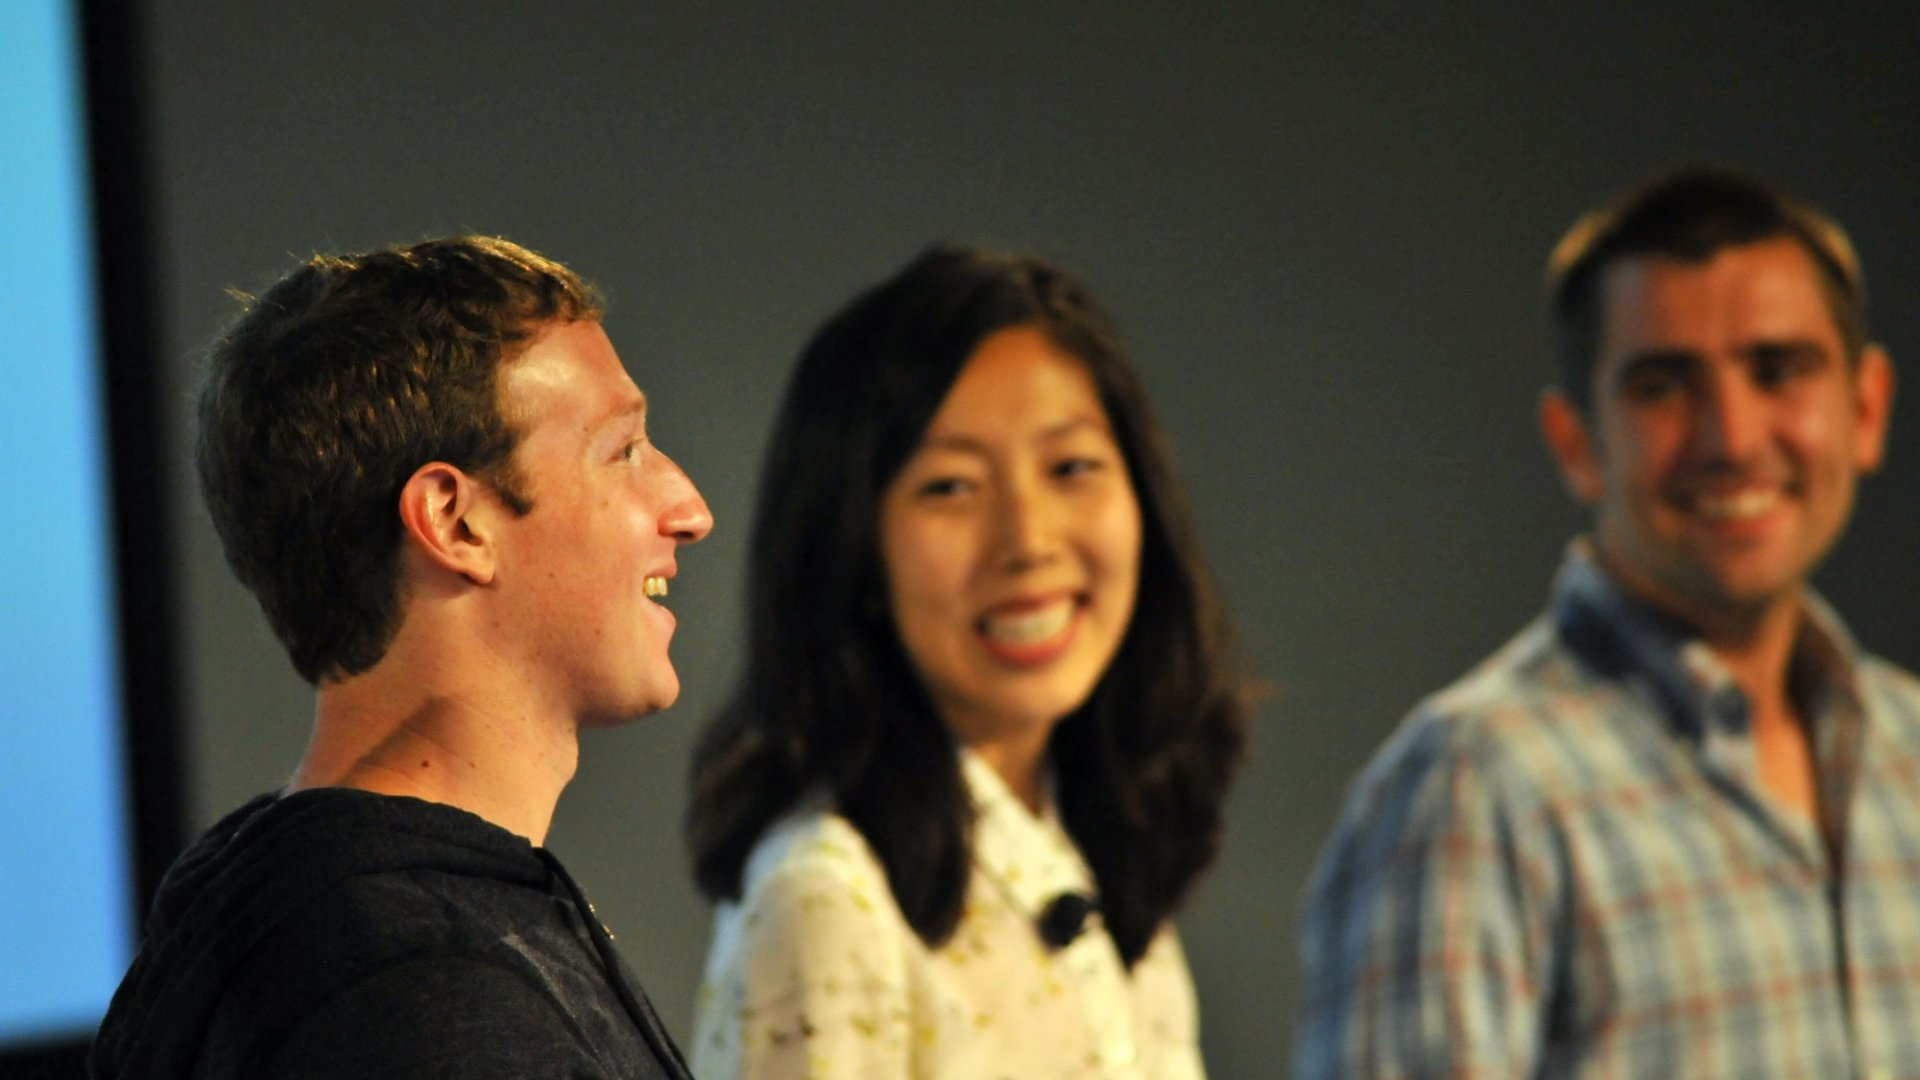 Facebook product design director Julie Zhuo has built up a strong following sharing details of her life at the company.